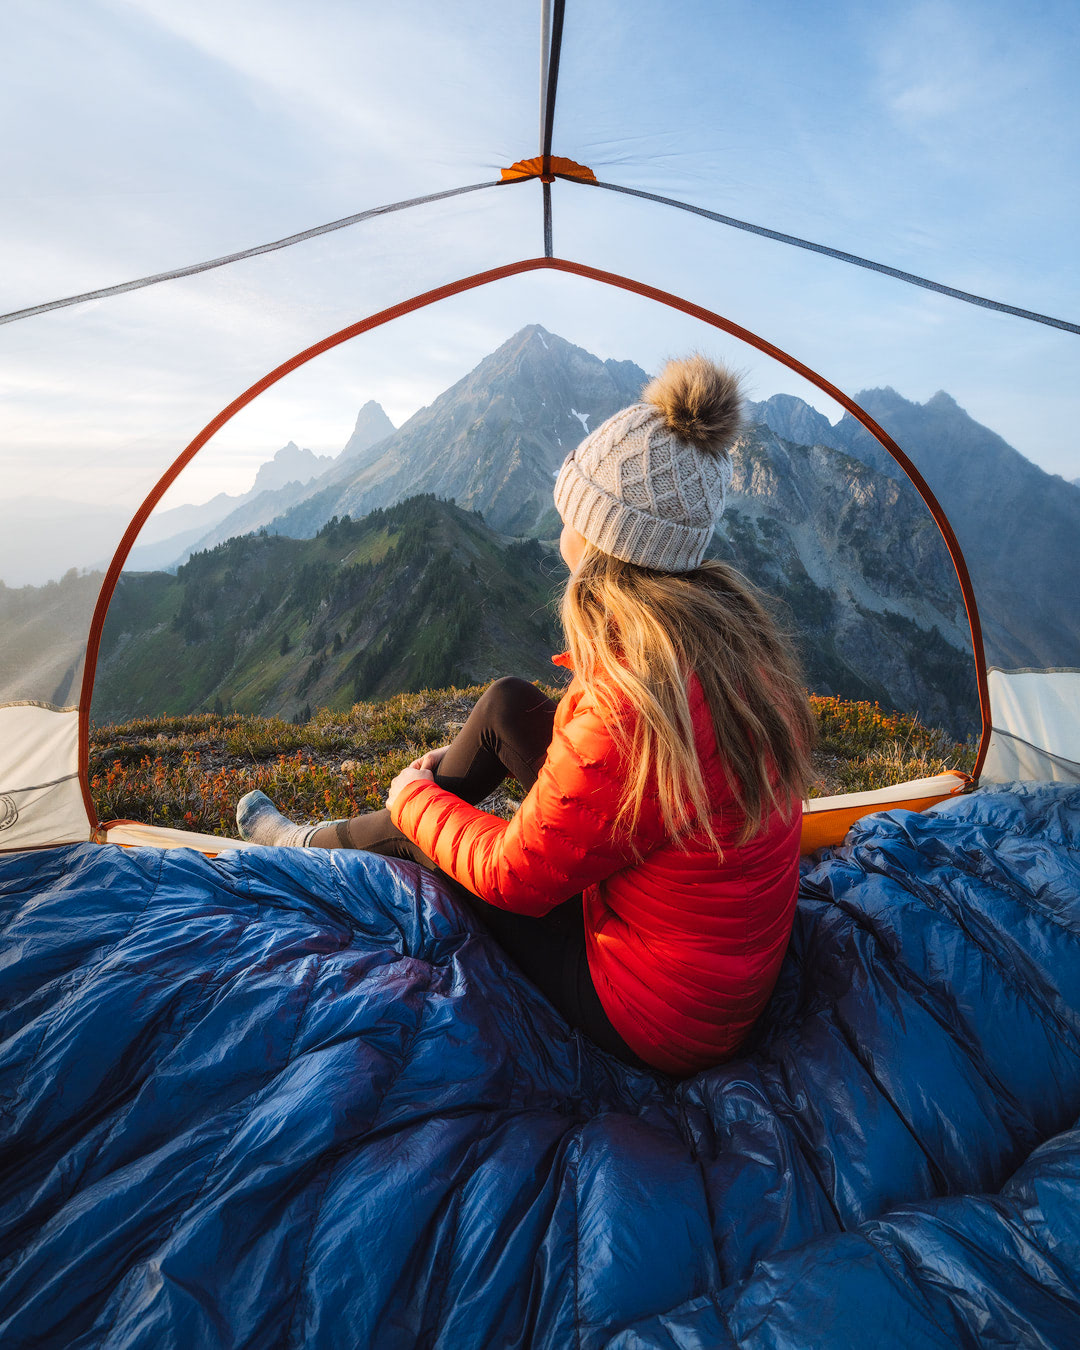 How To Get Over Your Fears of First Time Backcountry Camping - Tent With a View